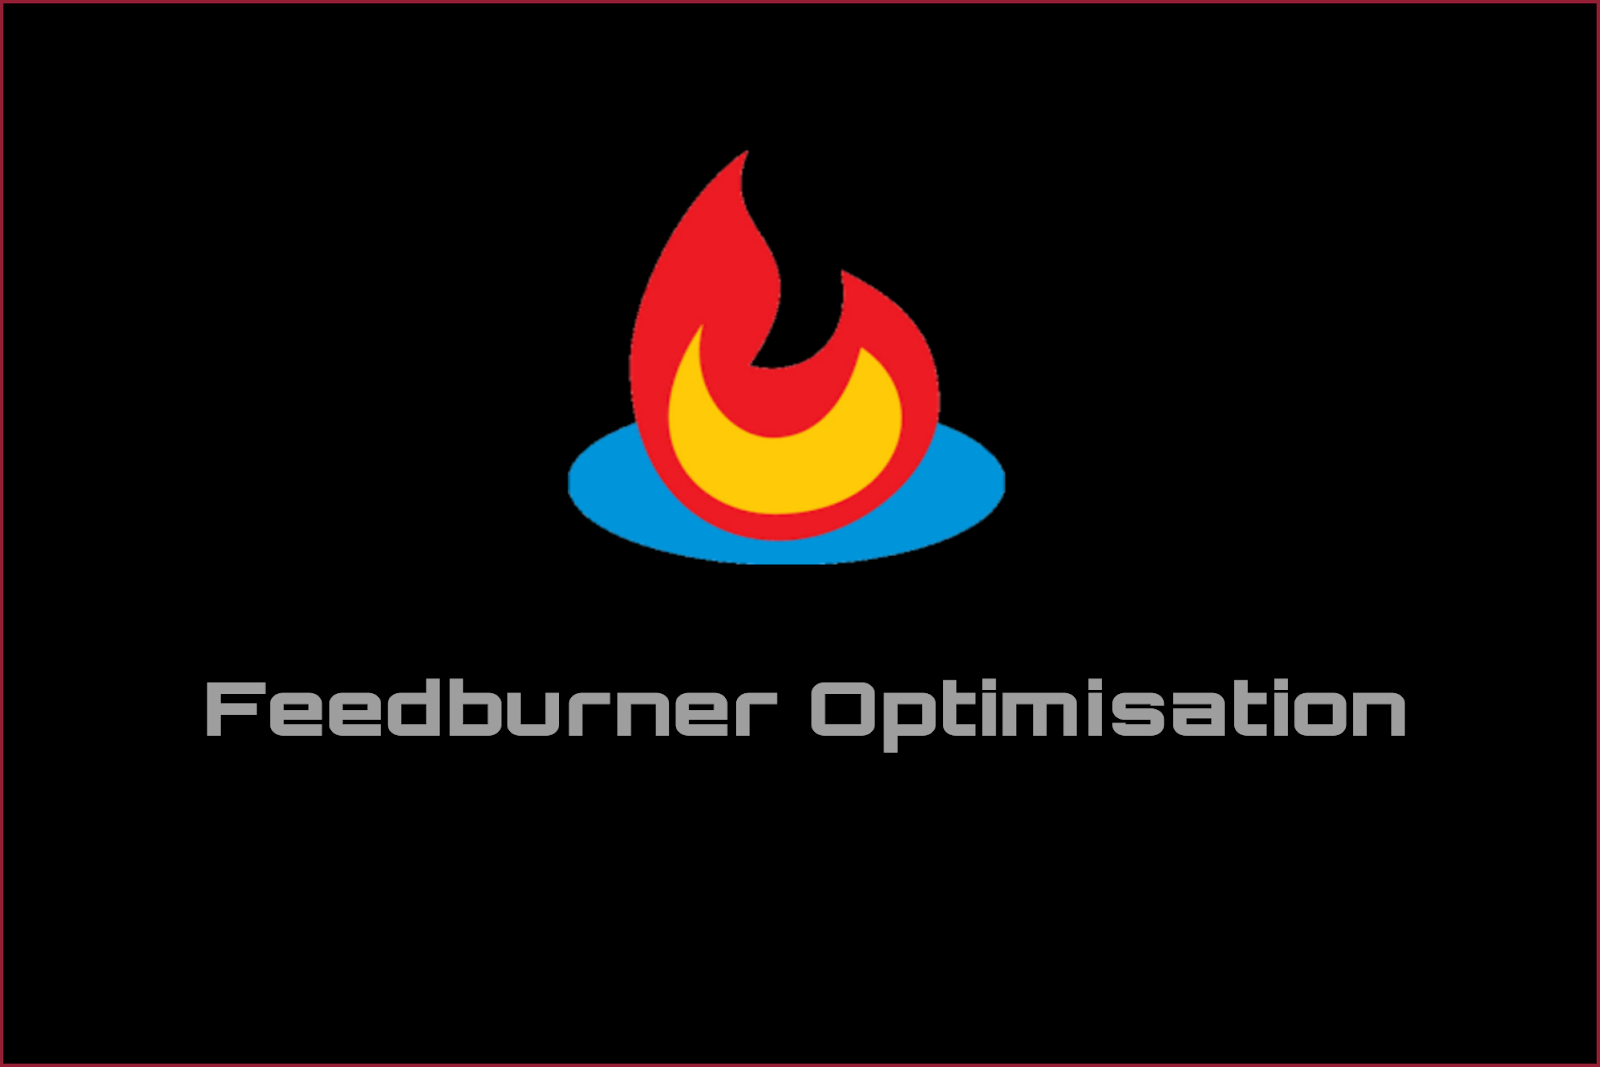 How to optimise feedburner email subscription easy way.